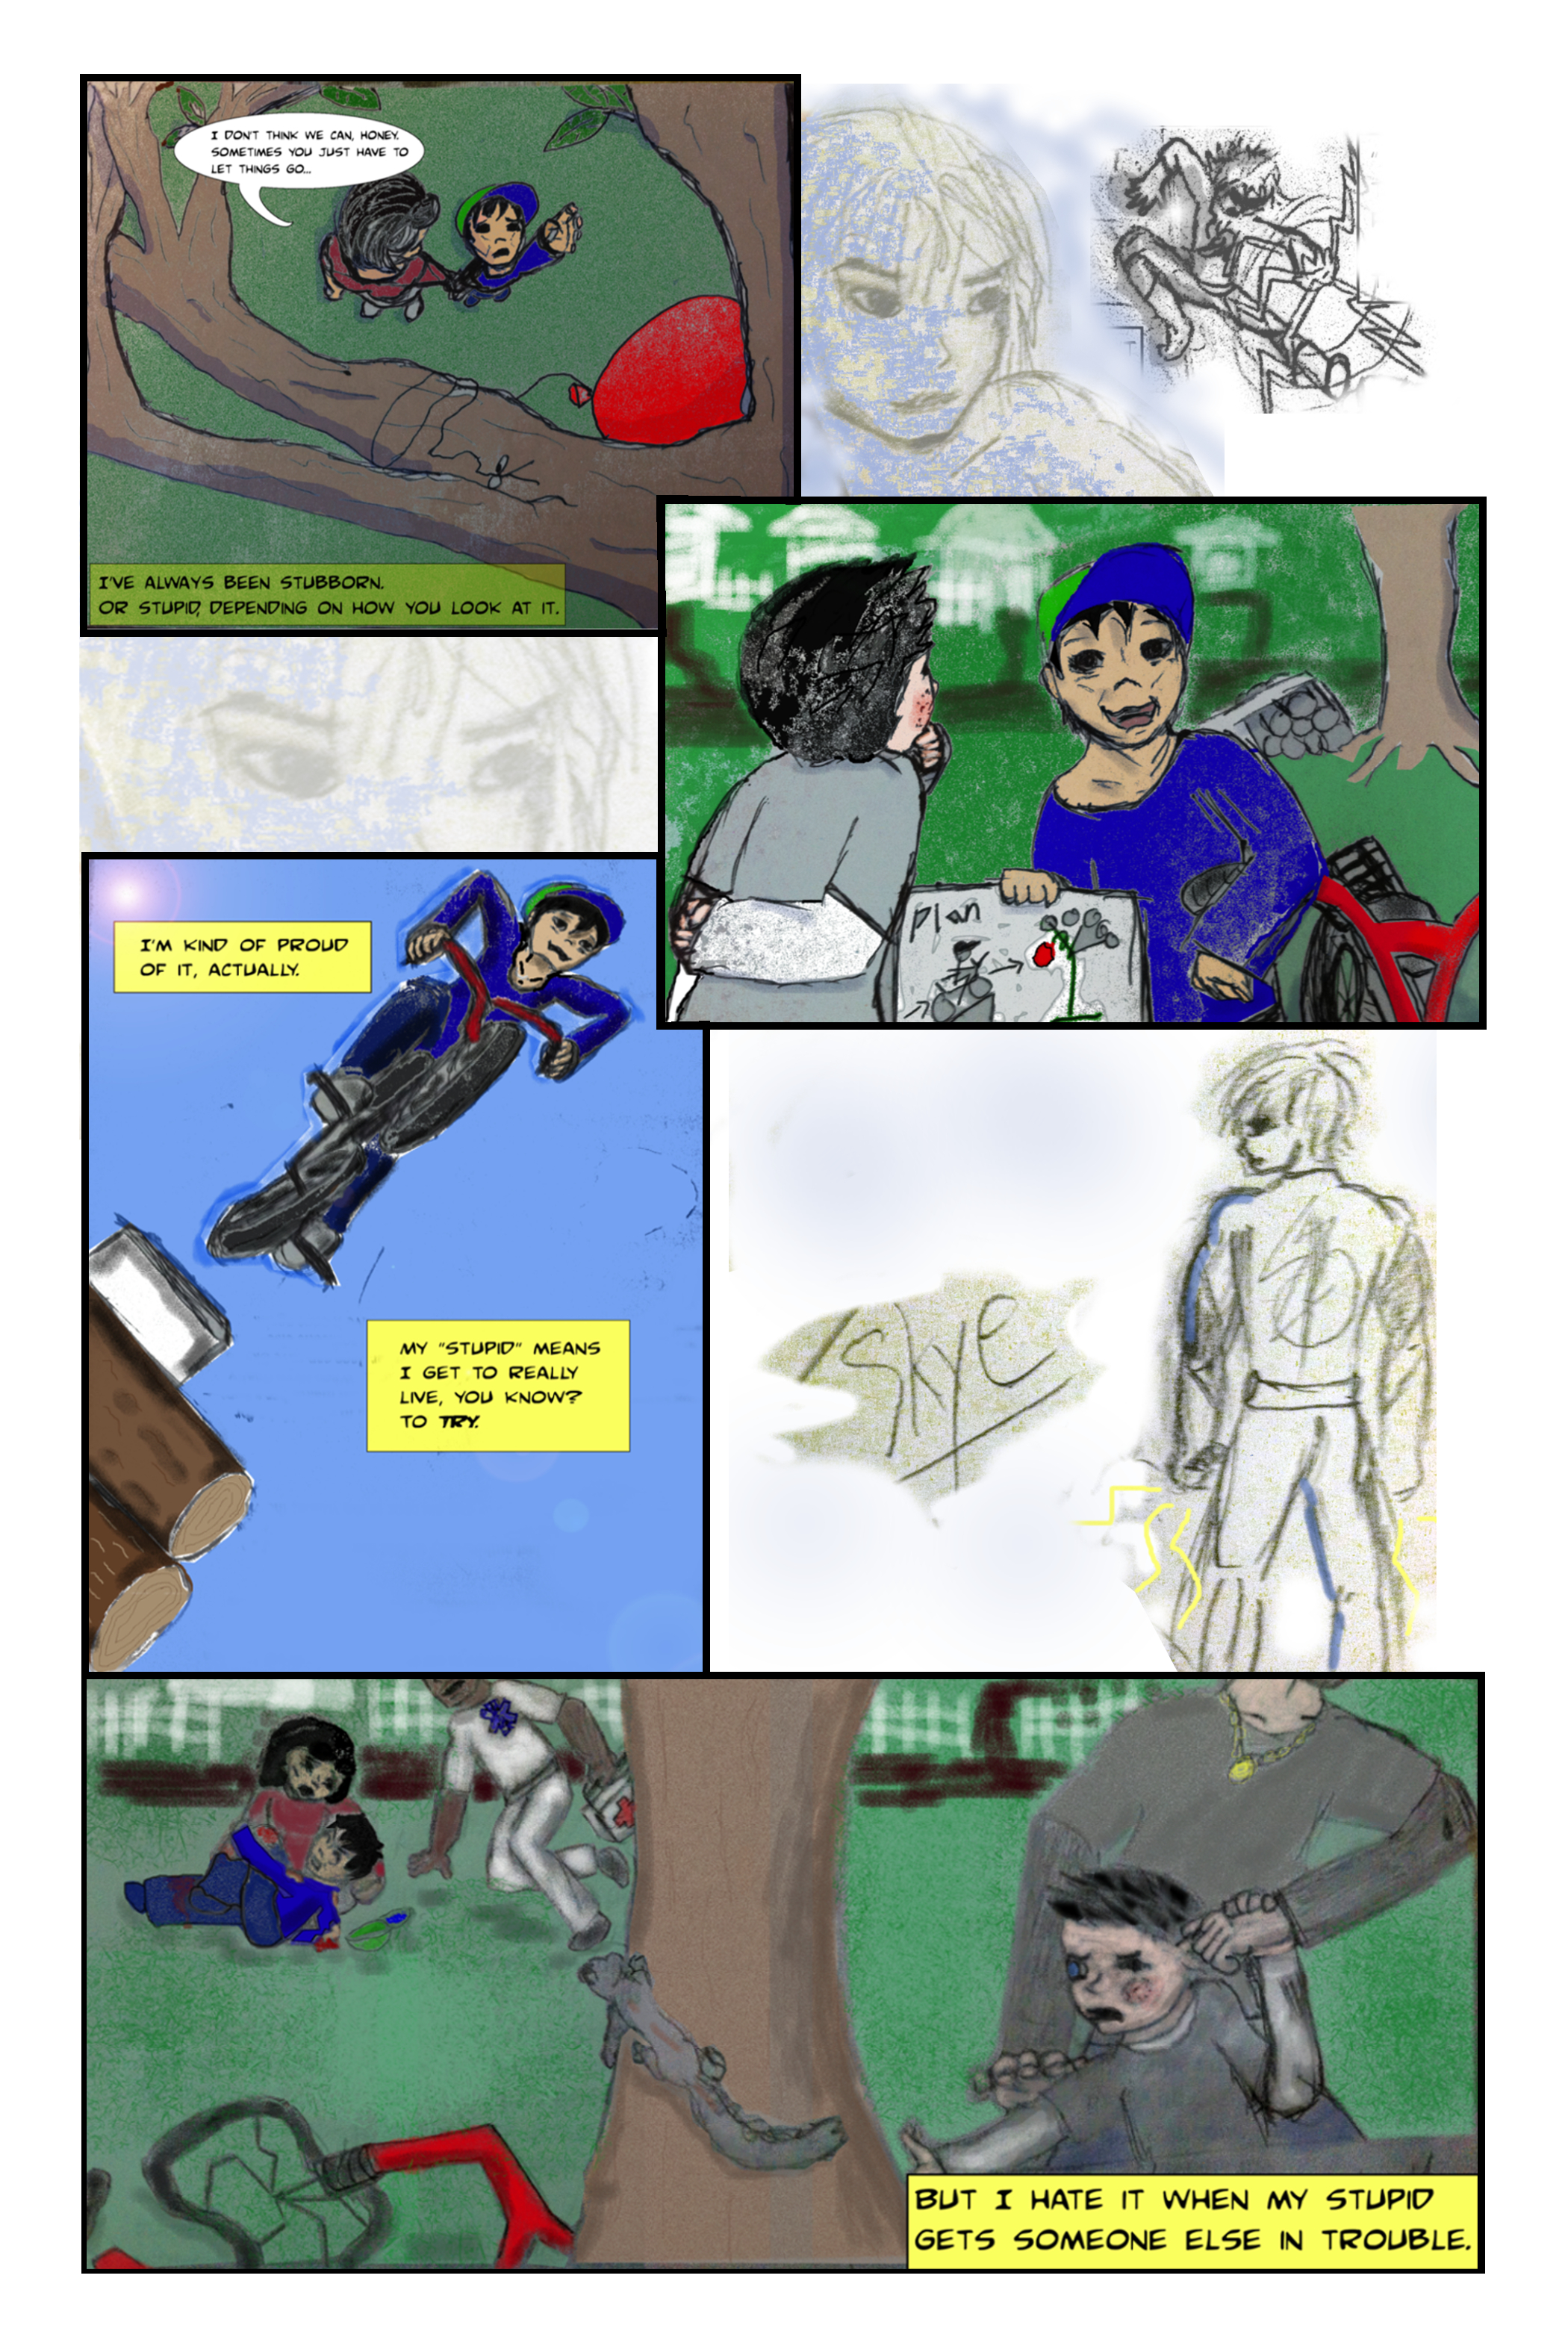 skye origins complete first page